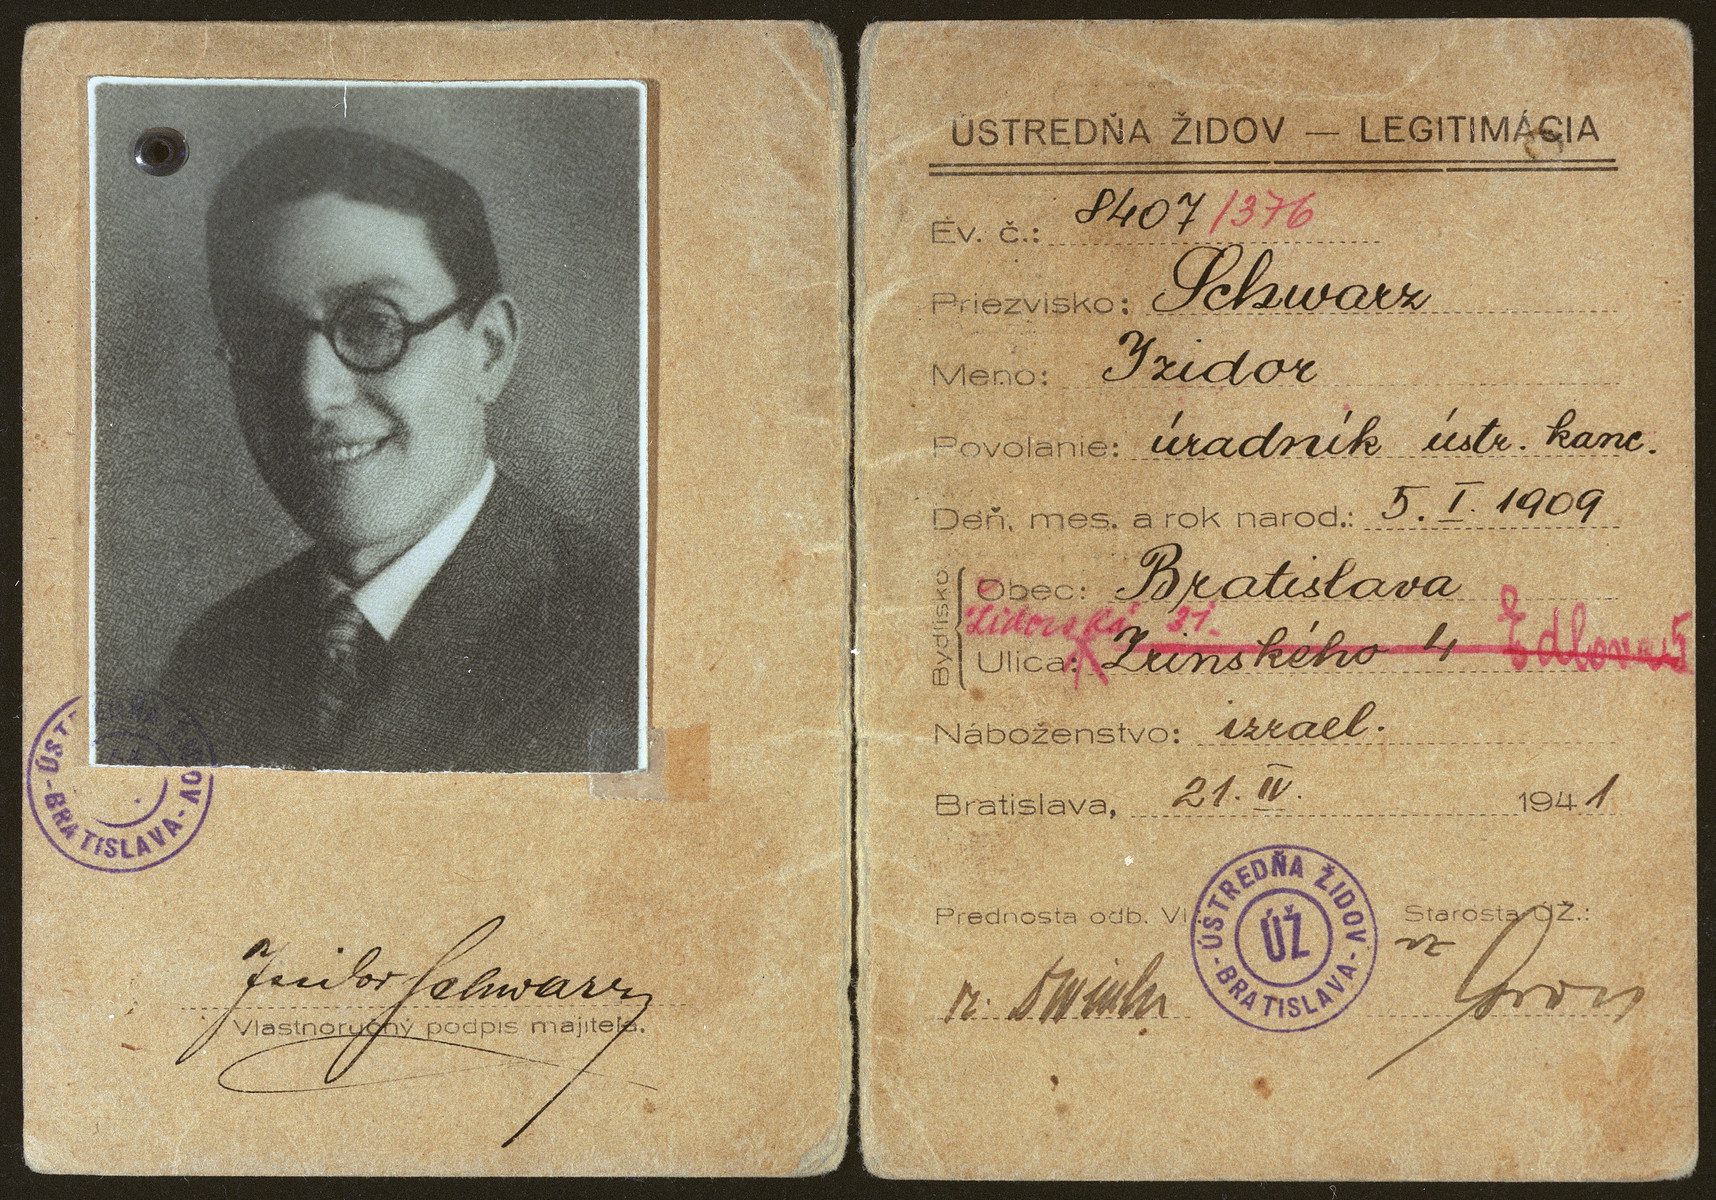 Interior pages of an identification card issued by the Ministry of the Interior to Izidor Schwarz stating that he is an office worker employed in the main office of the Jewish community.